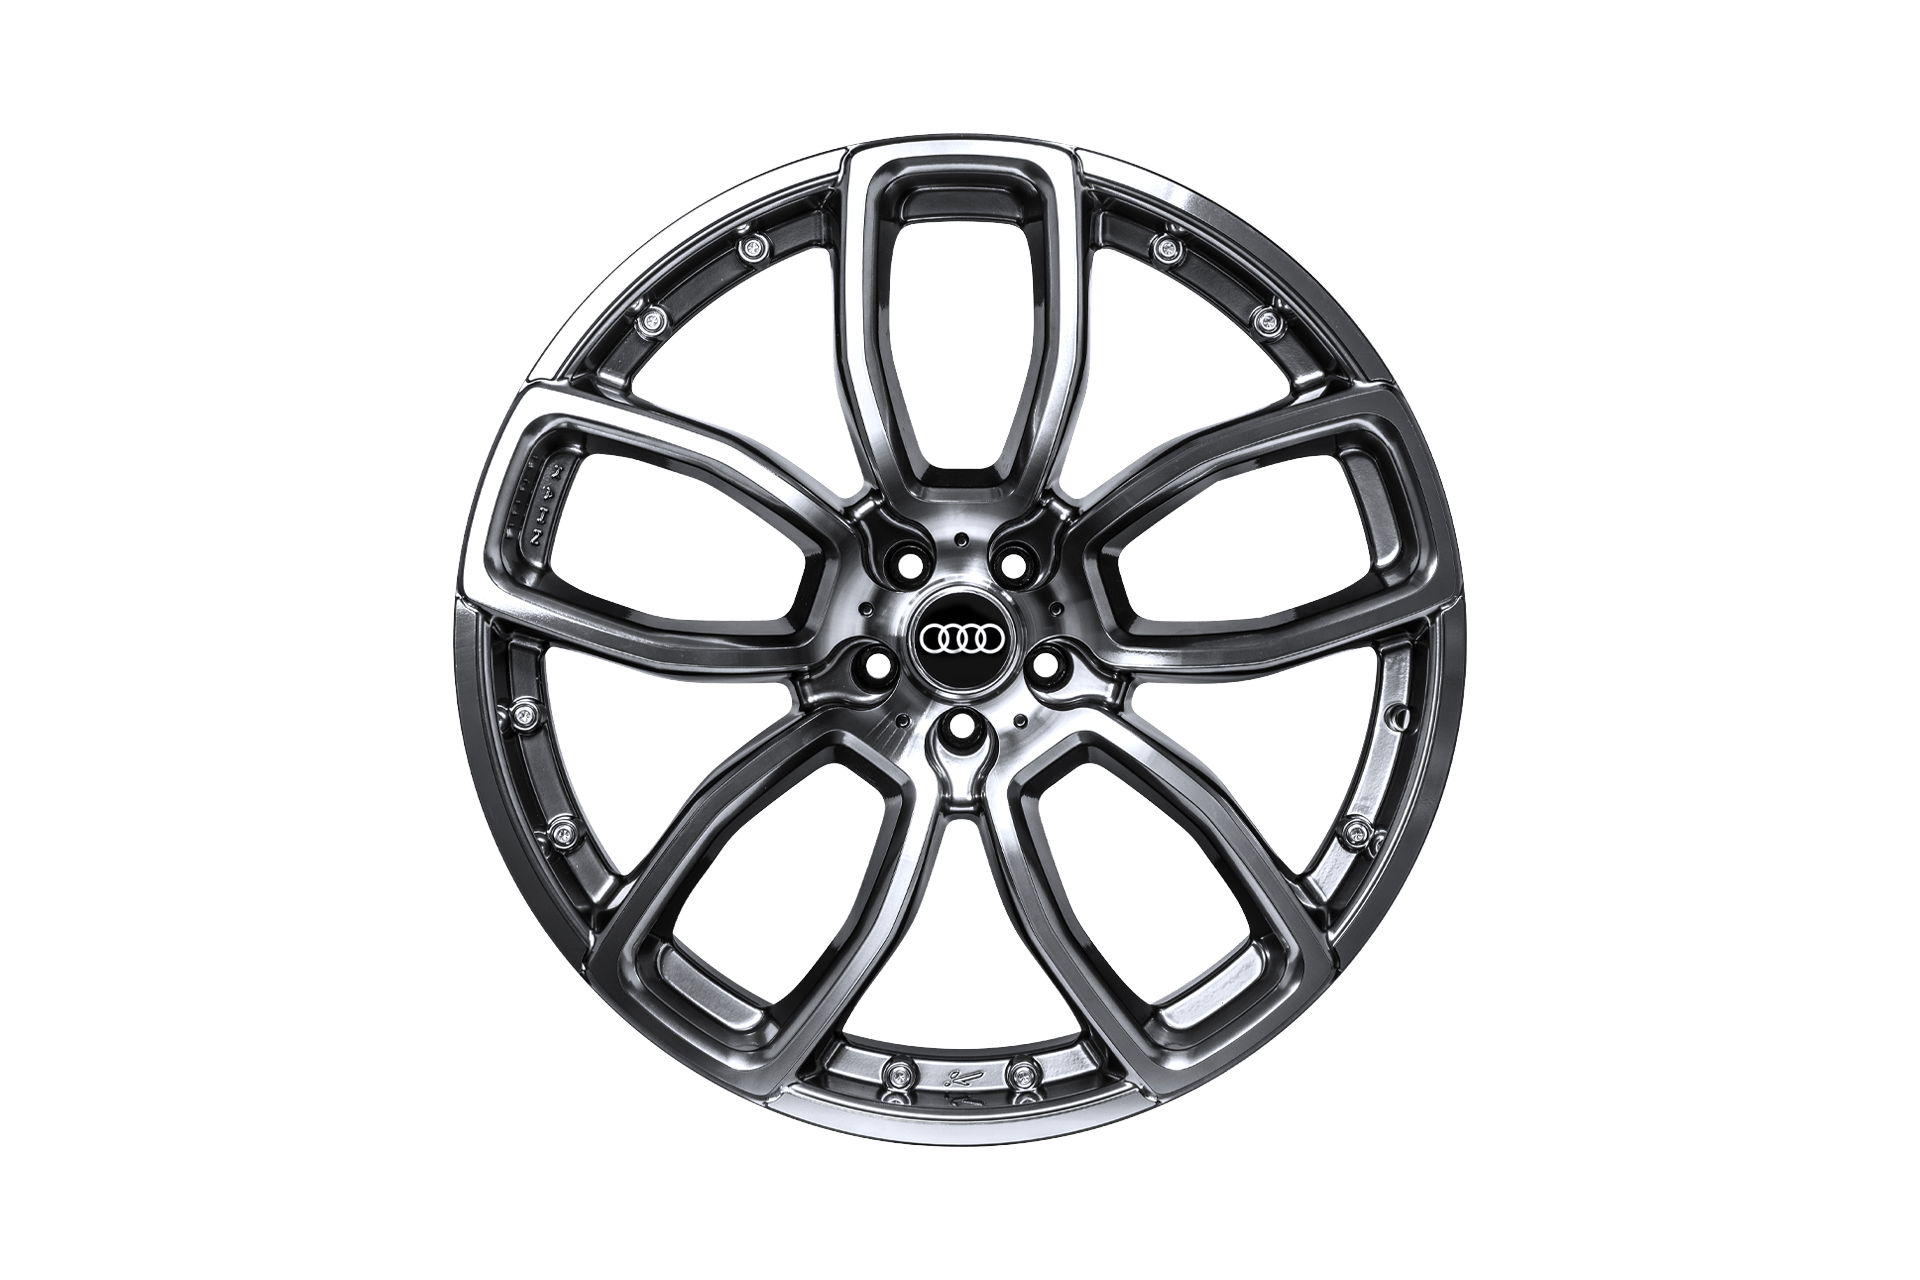 Audi Q7 (2016-Present) 600Le Light Alloy Wheels by Kahn - Image 3572